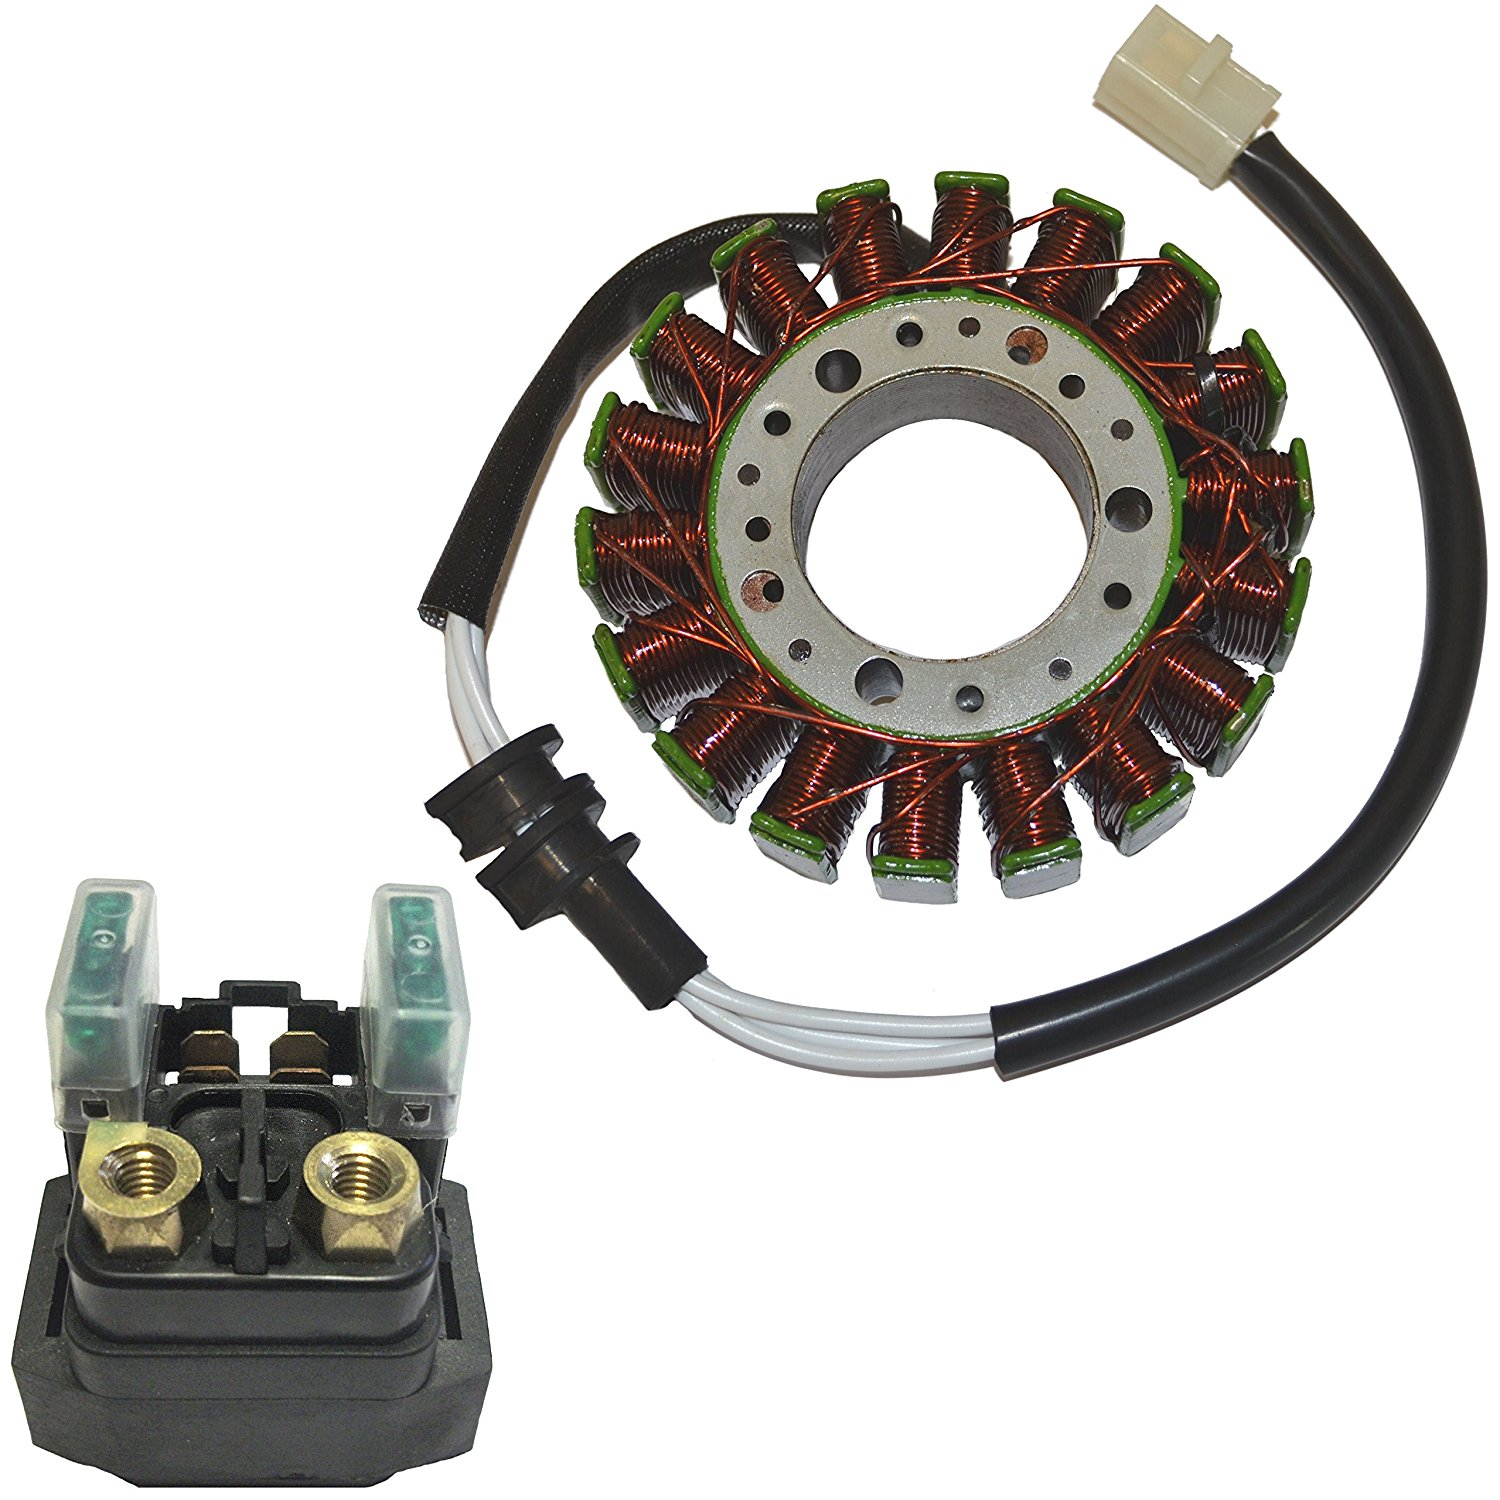 Magneto Stator Coil & Starter Relay for 1999-2002 Yamaha R6 YZFR6 YZF-R6 Motorcycle